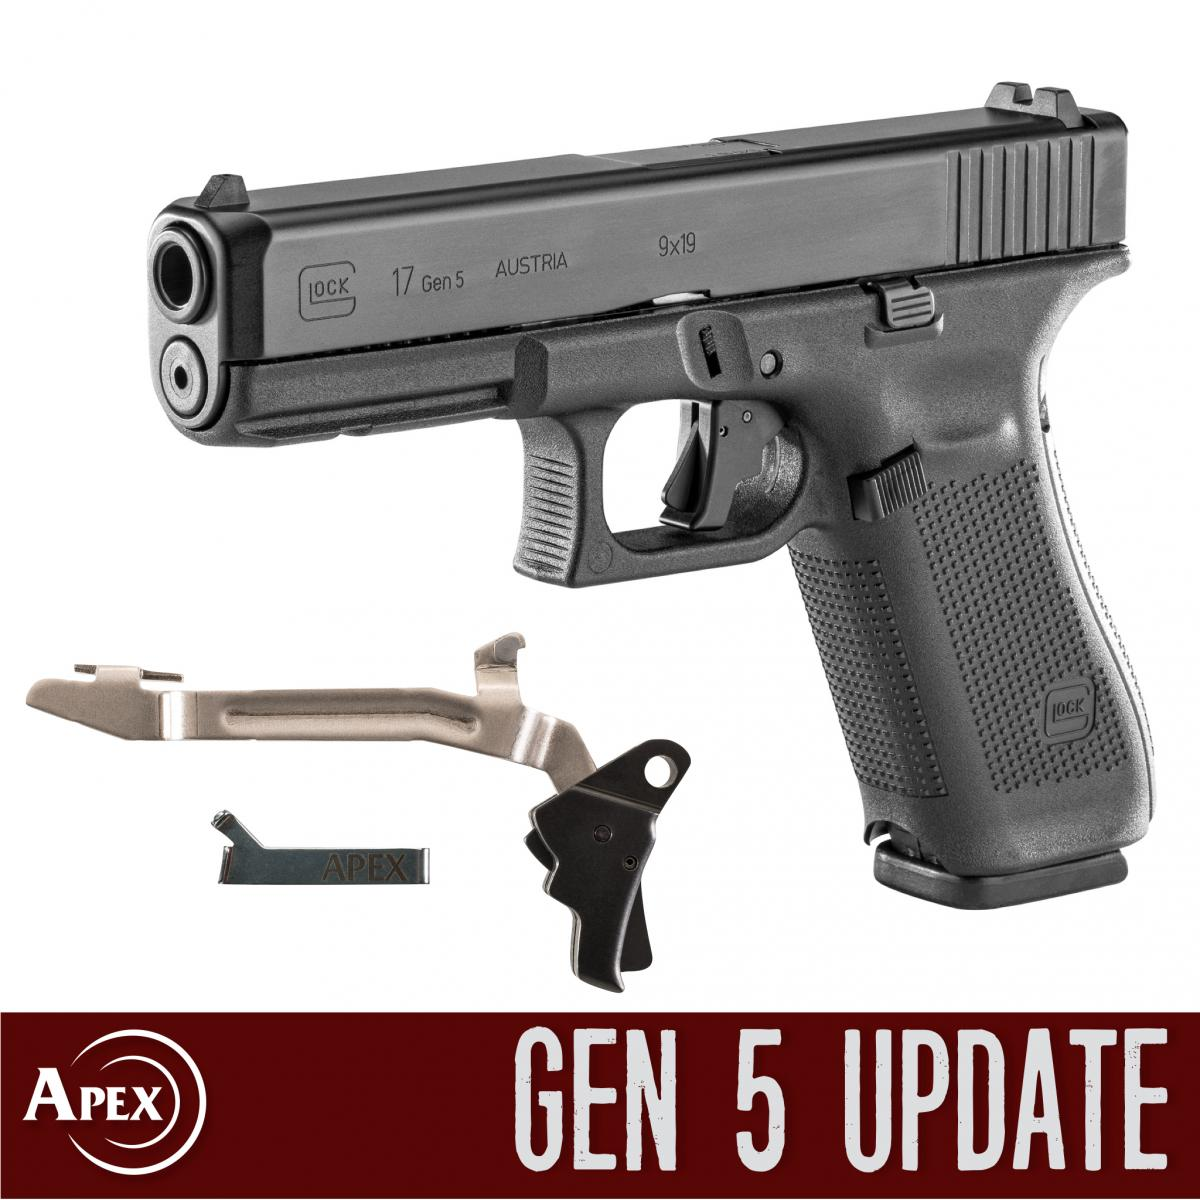 Apex Update On Gen 5 Glock Trigger